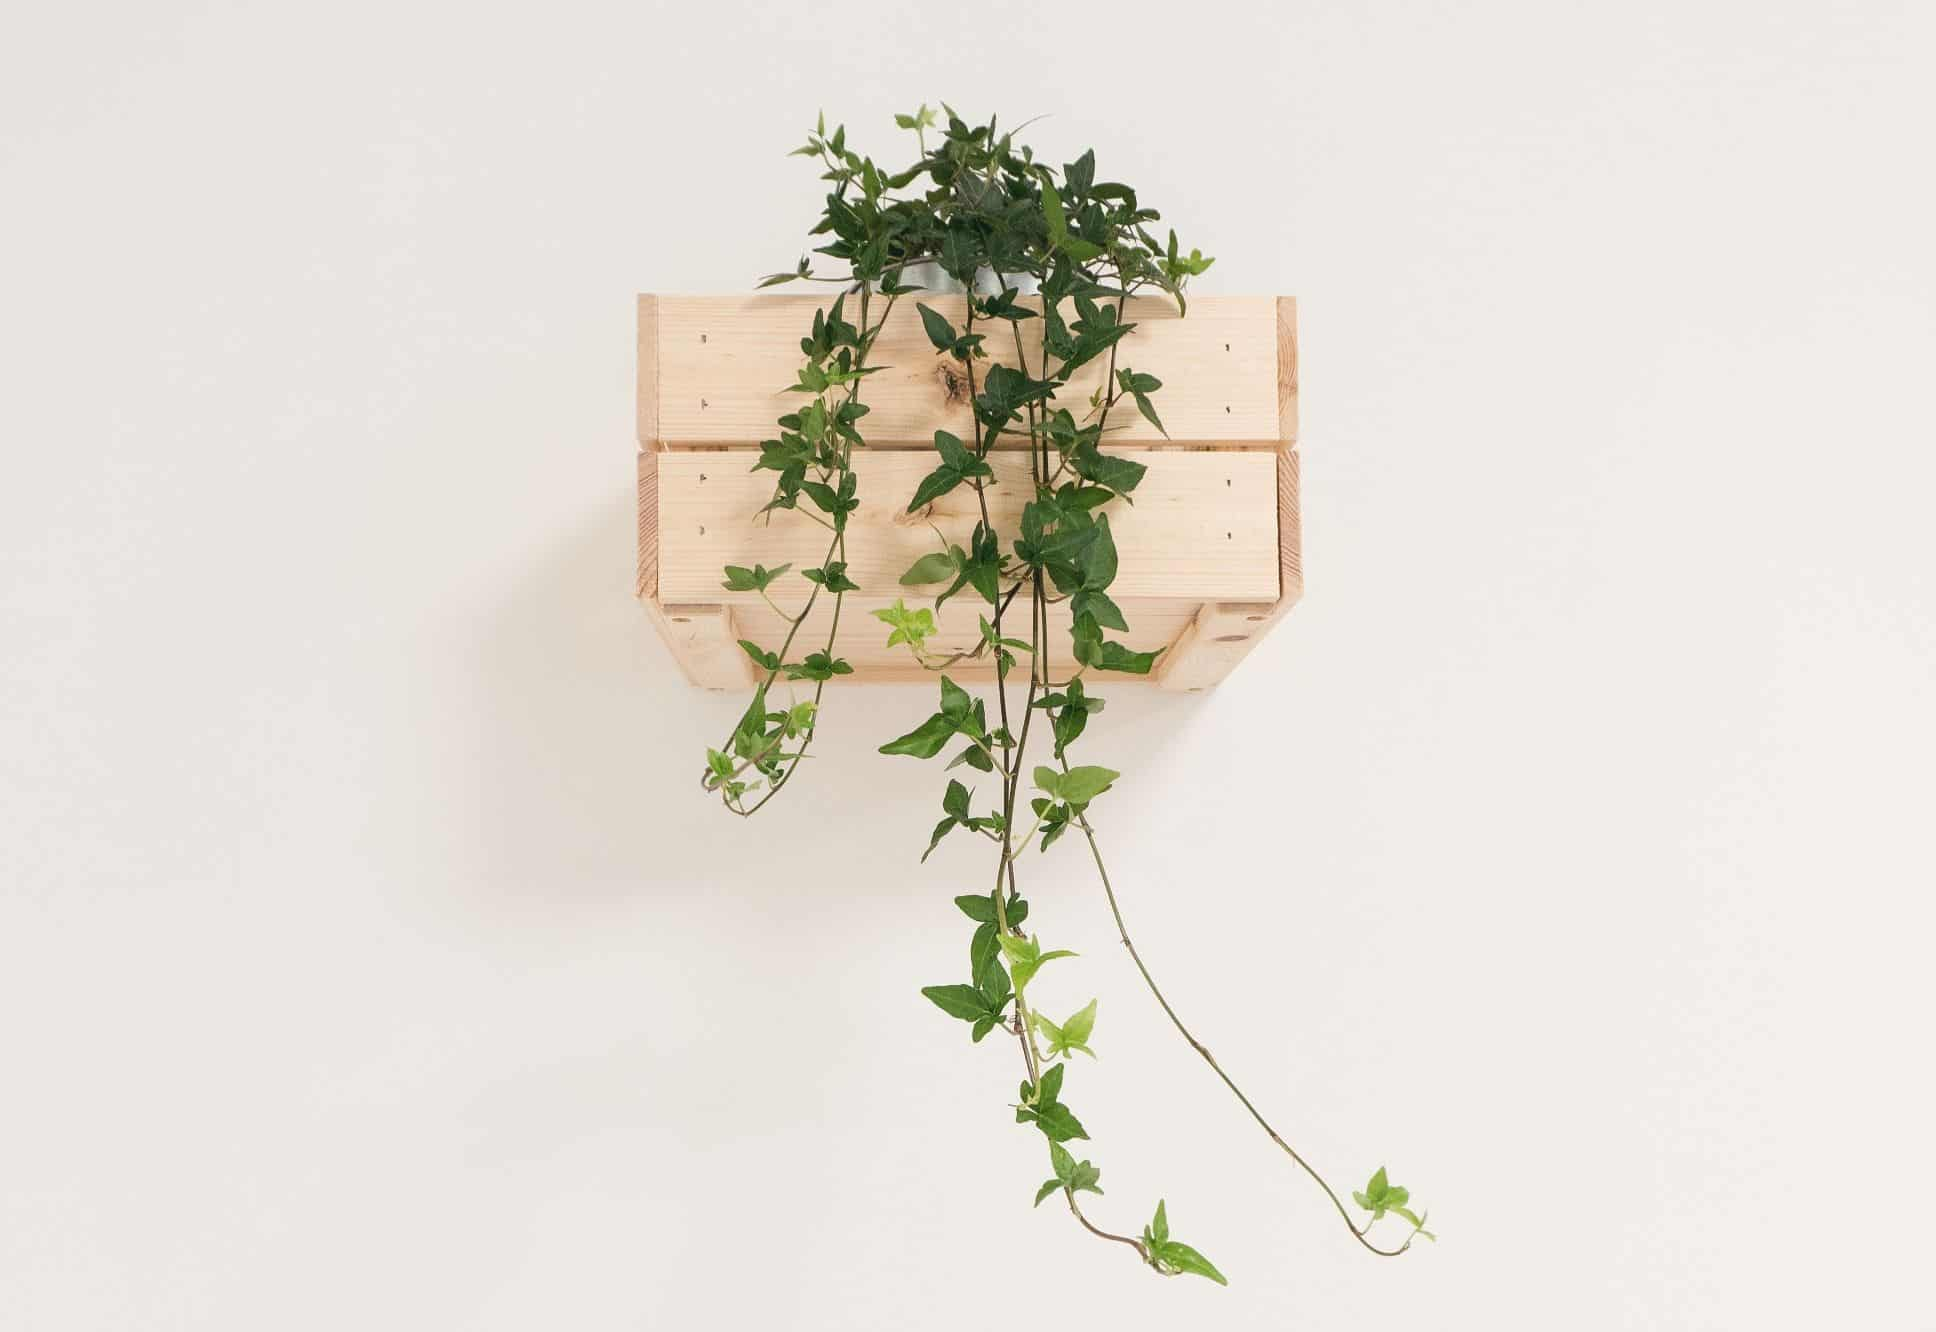 diy-wood-projects-6-small-diy-planter-box-unsplash